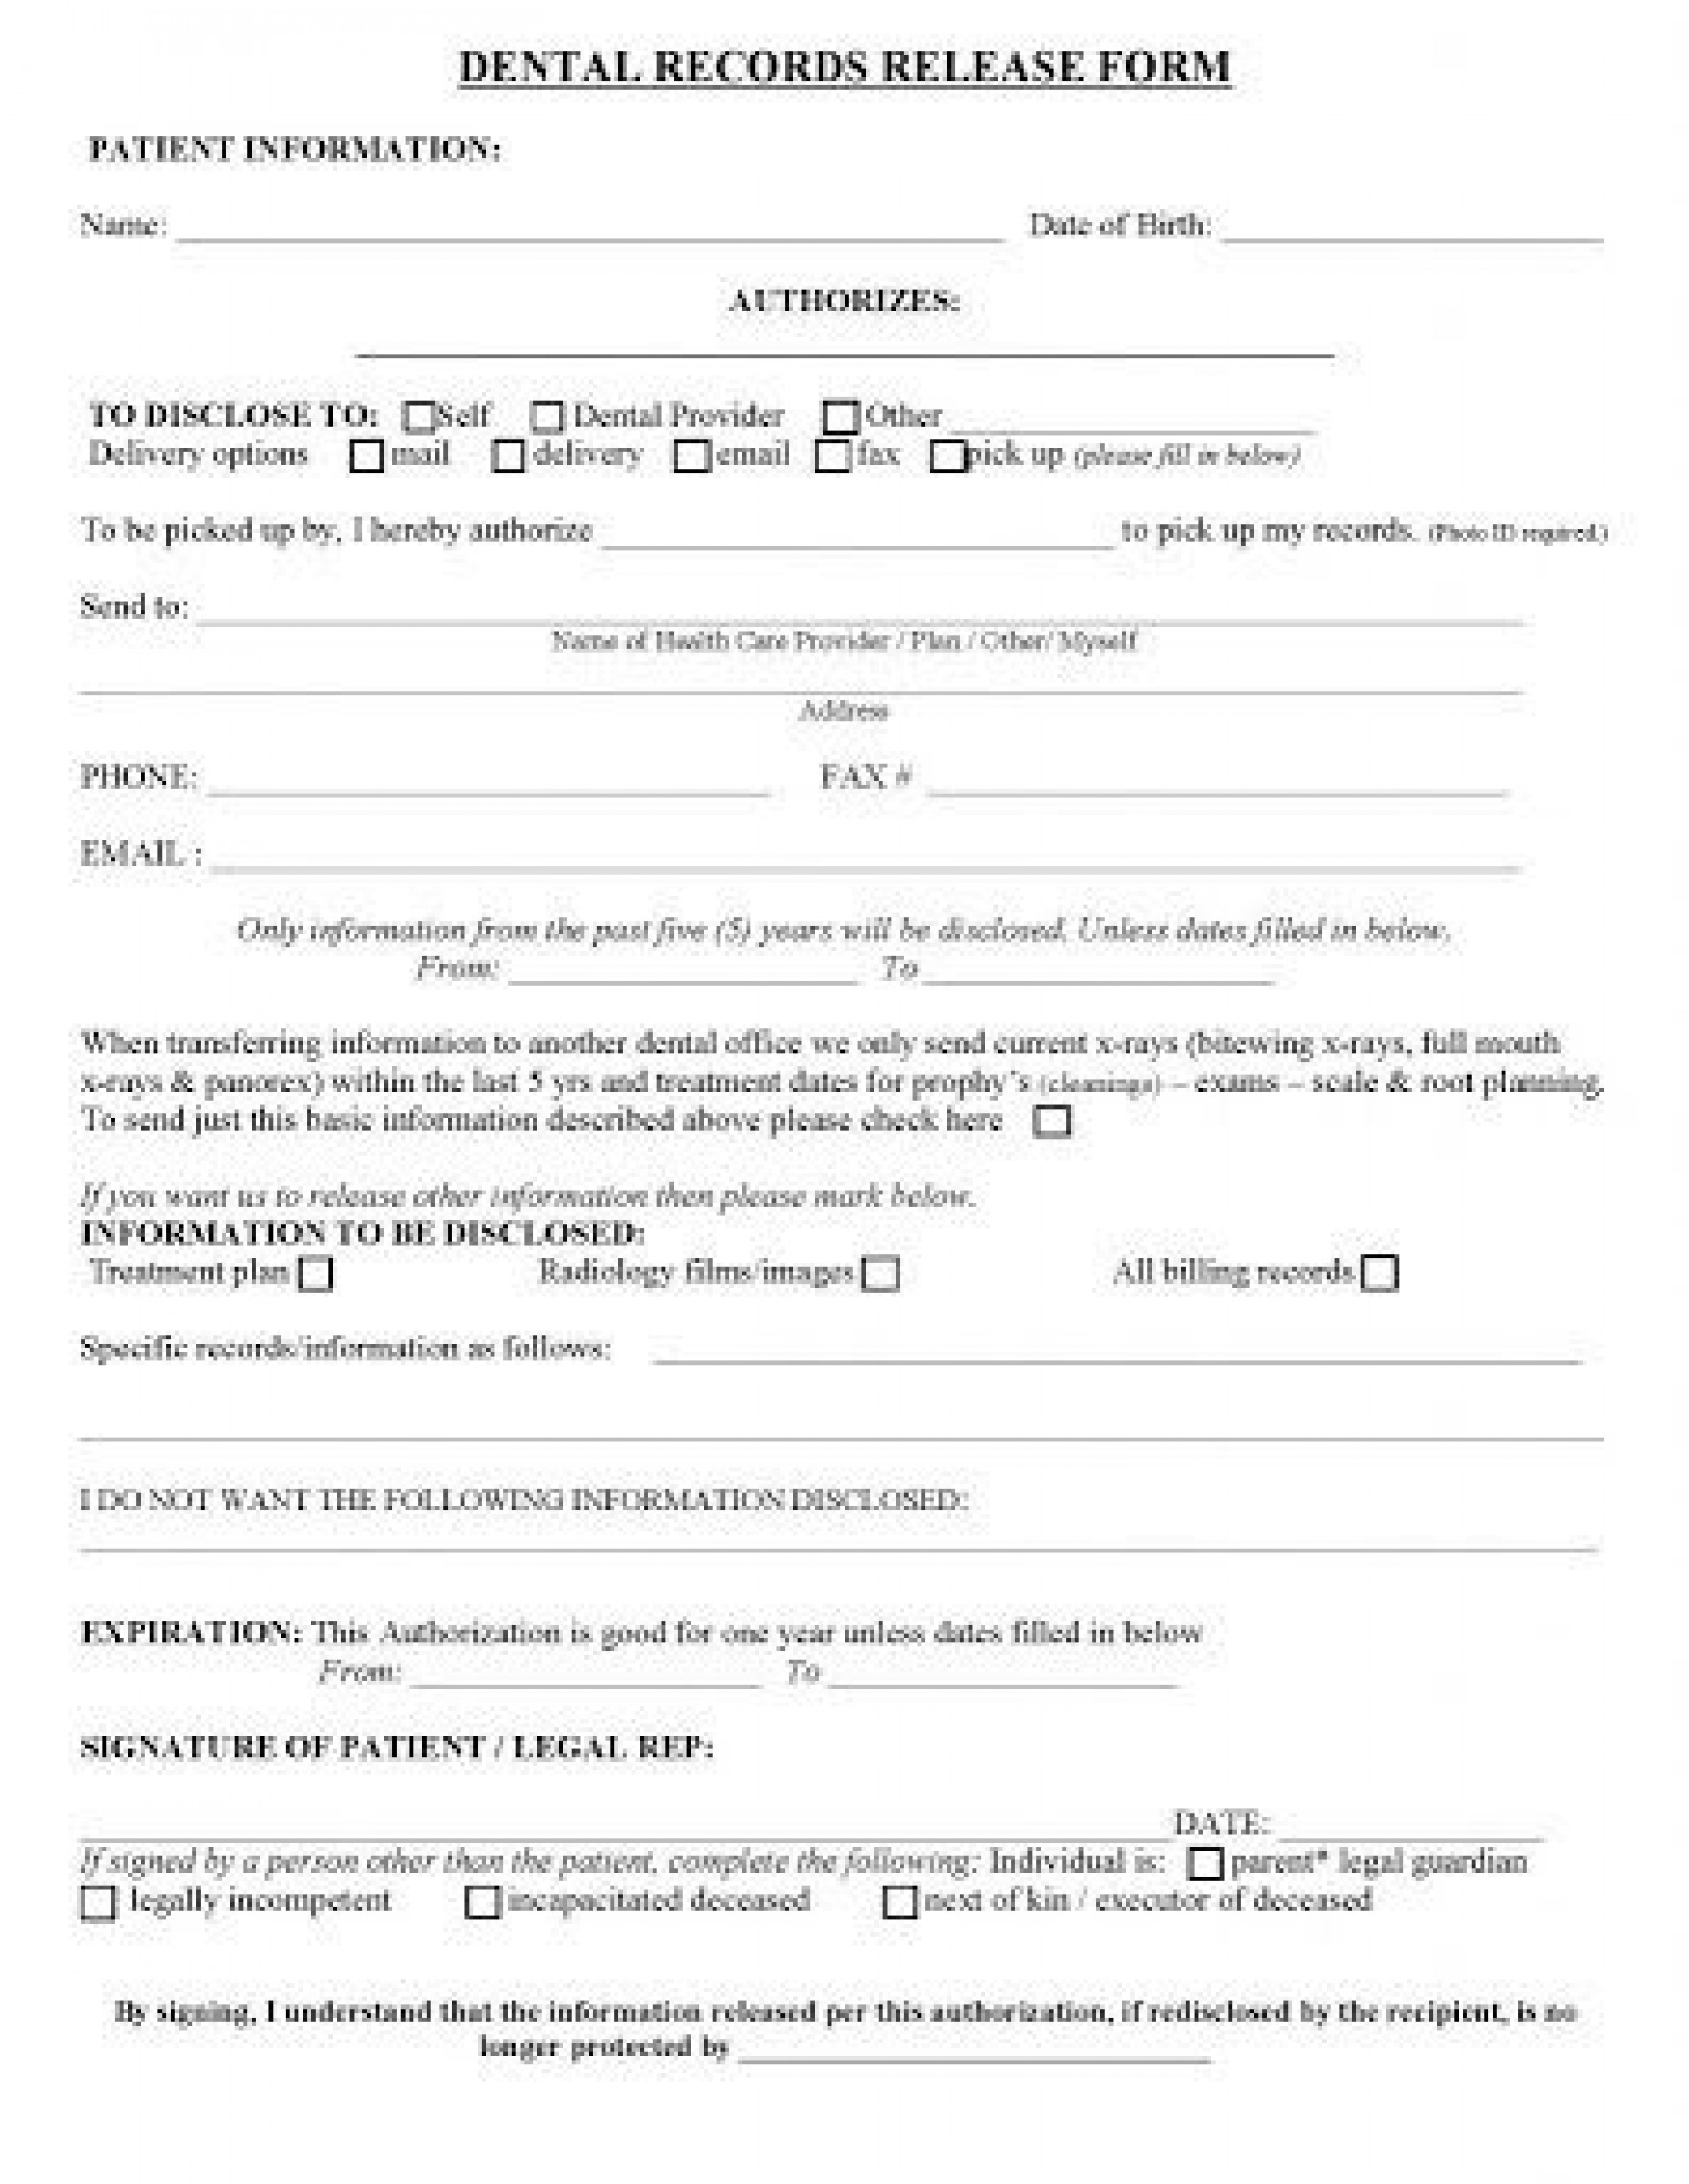 008 Excellent Medical Record Release Form Template Concept  Request Free Personal1920